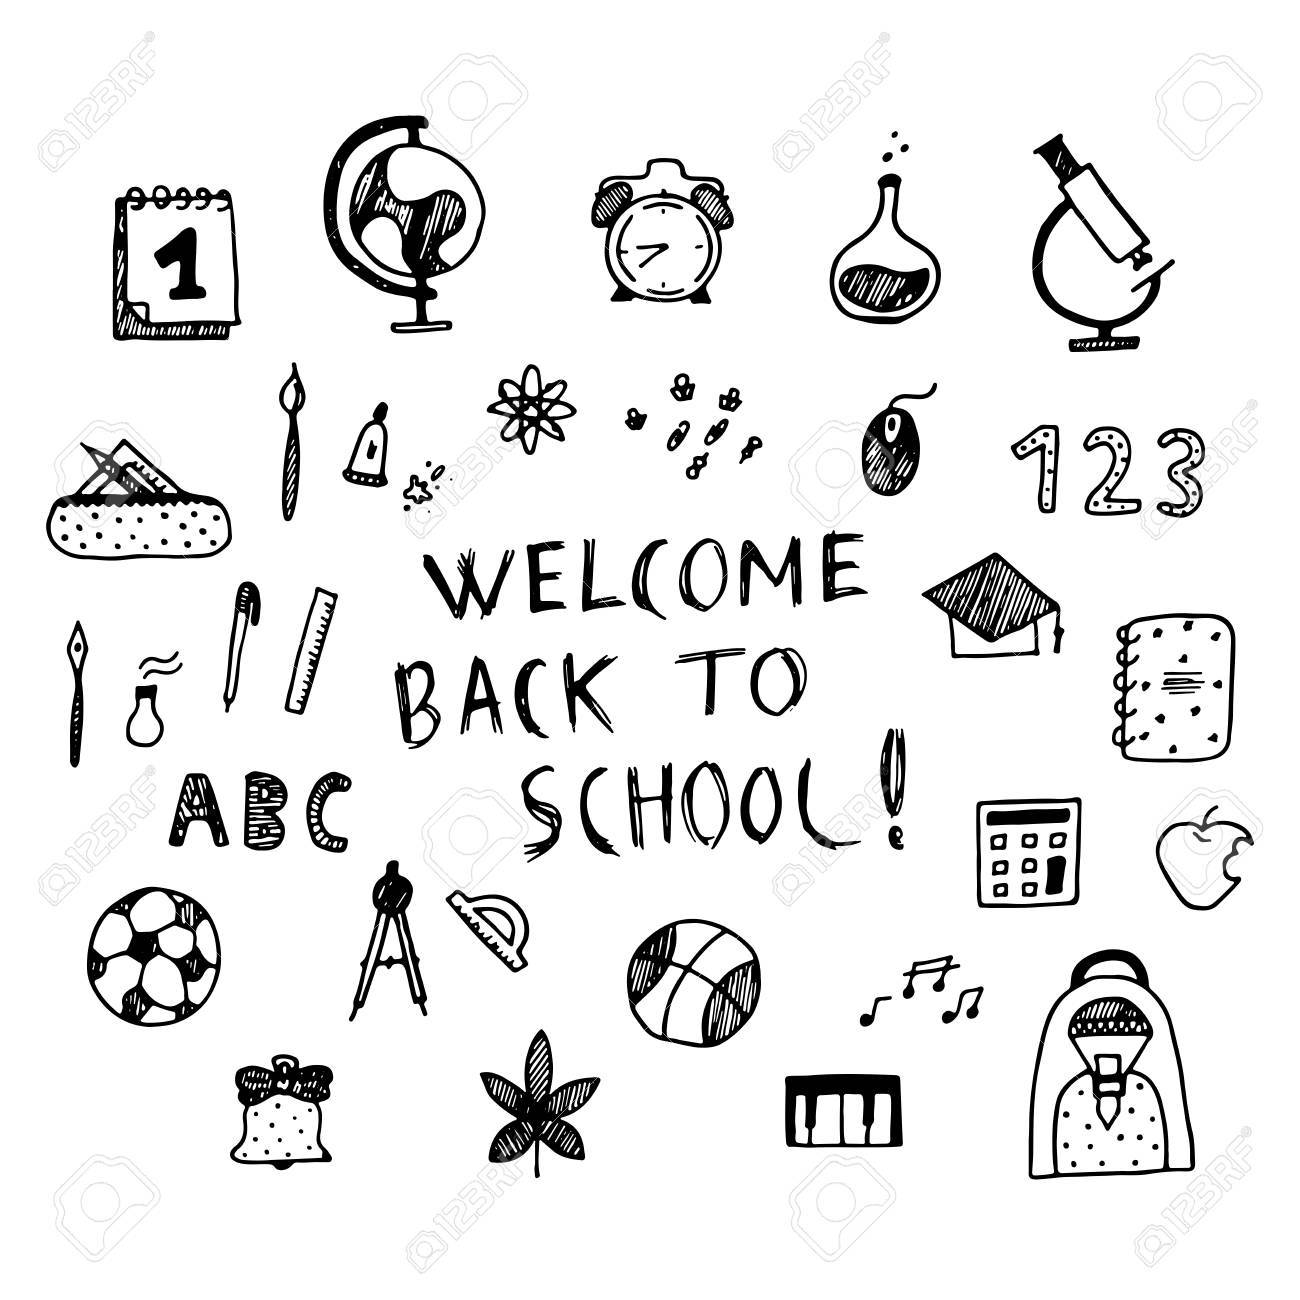 welcome back to school poster. hand drawn vector illistration